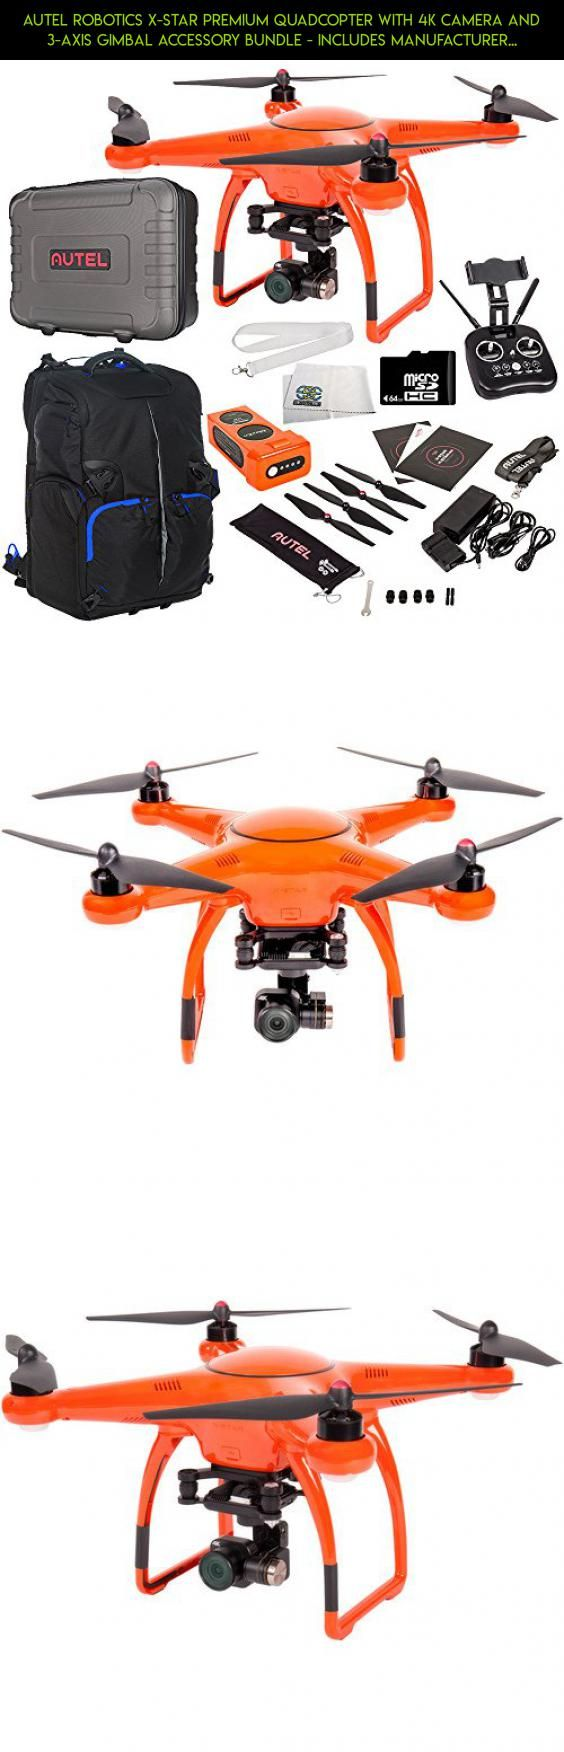 Autel Robotics X-Star Premium Quadcopter with 4K Camera and 3-Axis Gimbal Accessory Bundle - Includes Manufacturer Accessories + 64GB Micro SD Card + Drone Backpack + MORE #gadgets #camera #plans #technology #x-star #parts #robotics #fpv #autel #kit #shopping #products #tech #premium #racing #drone